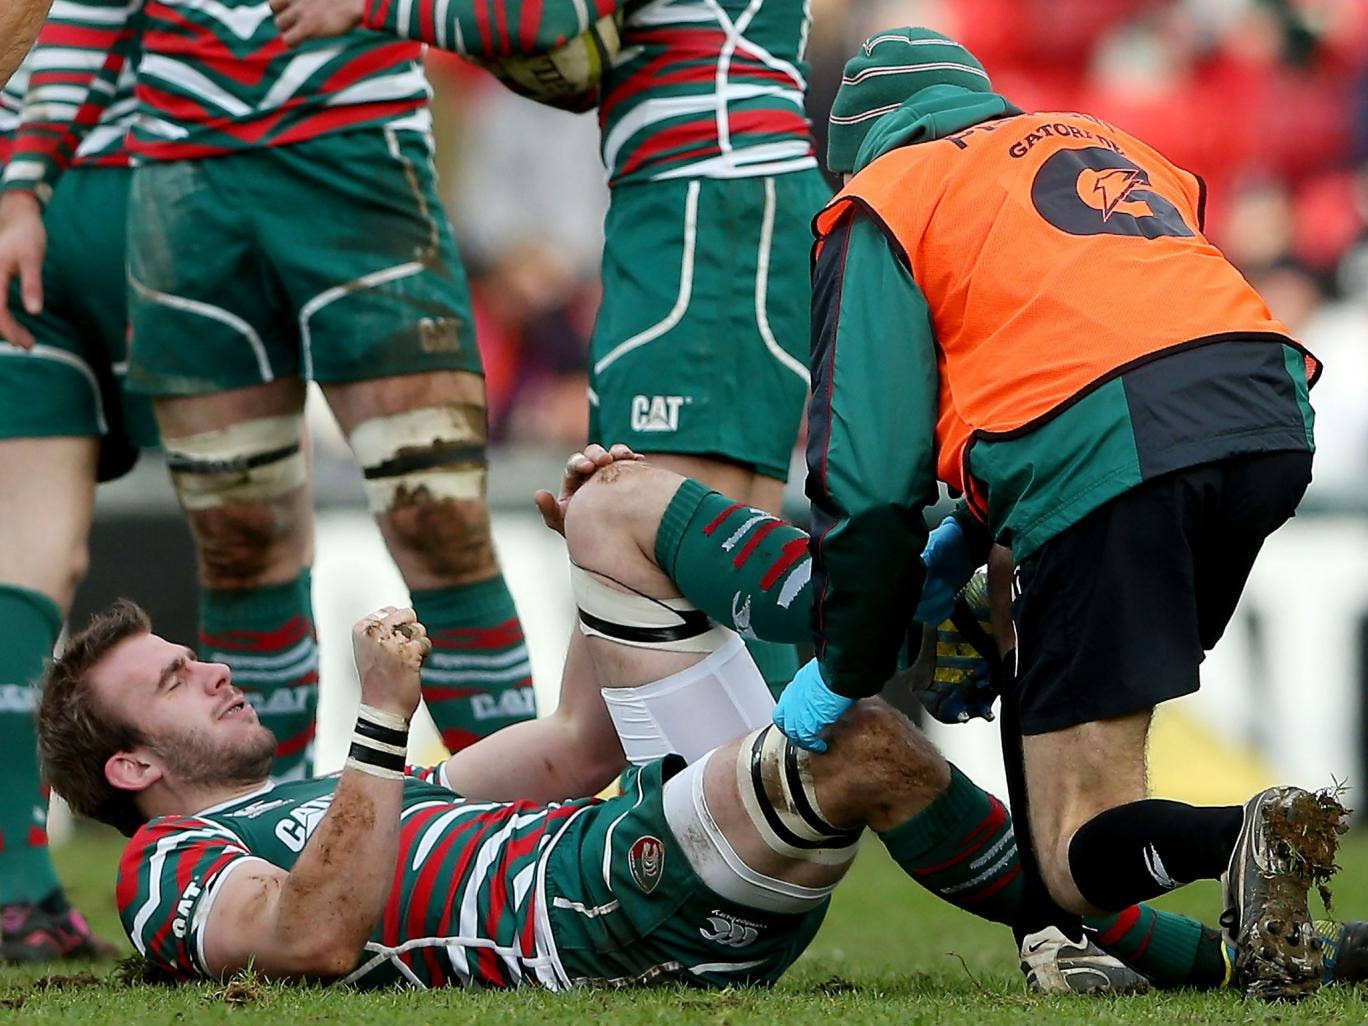 Tigers' director of rugby Richard Cockerill said of Tom Croft's injury: 'Tom's okay. He stiffened up and had a spasm and he just couldn't continue.'